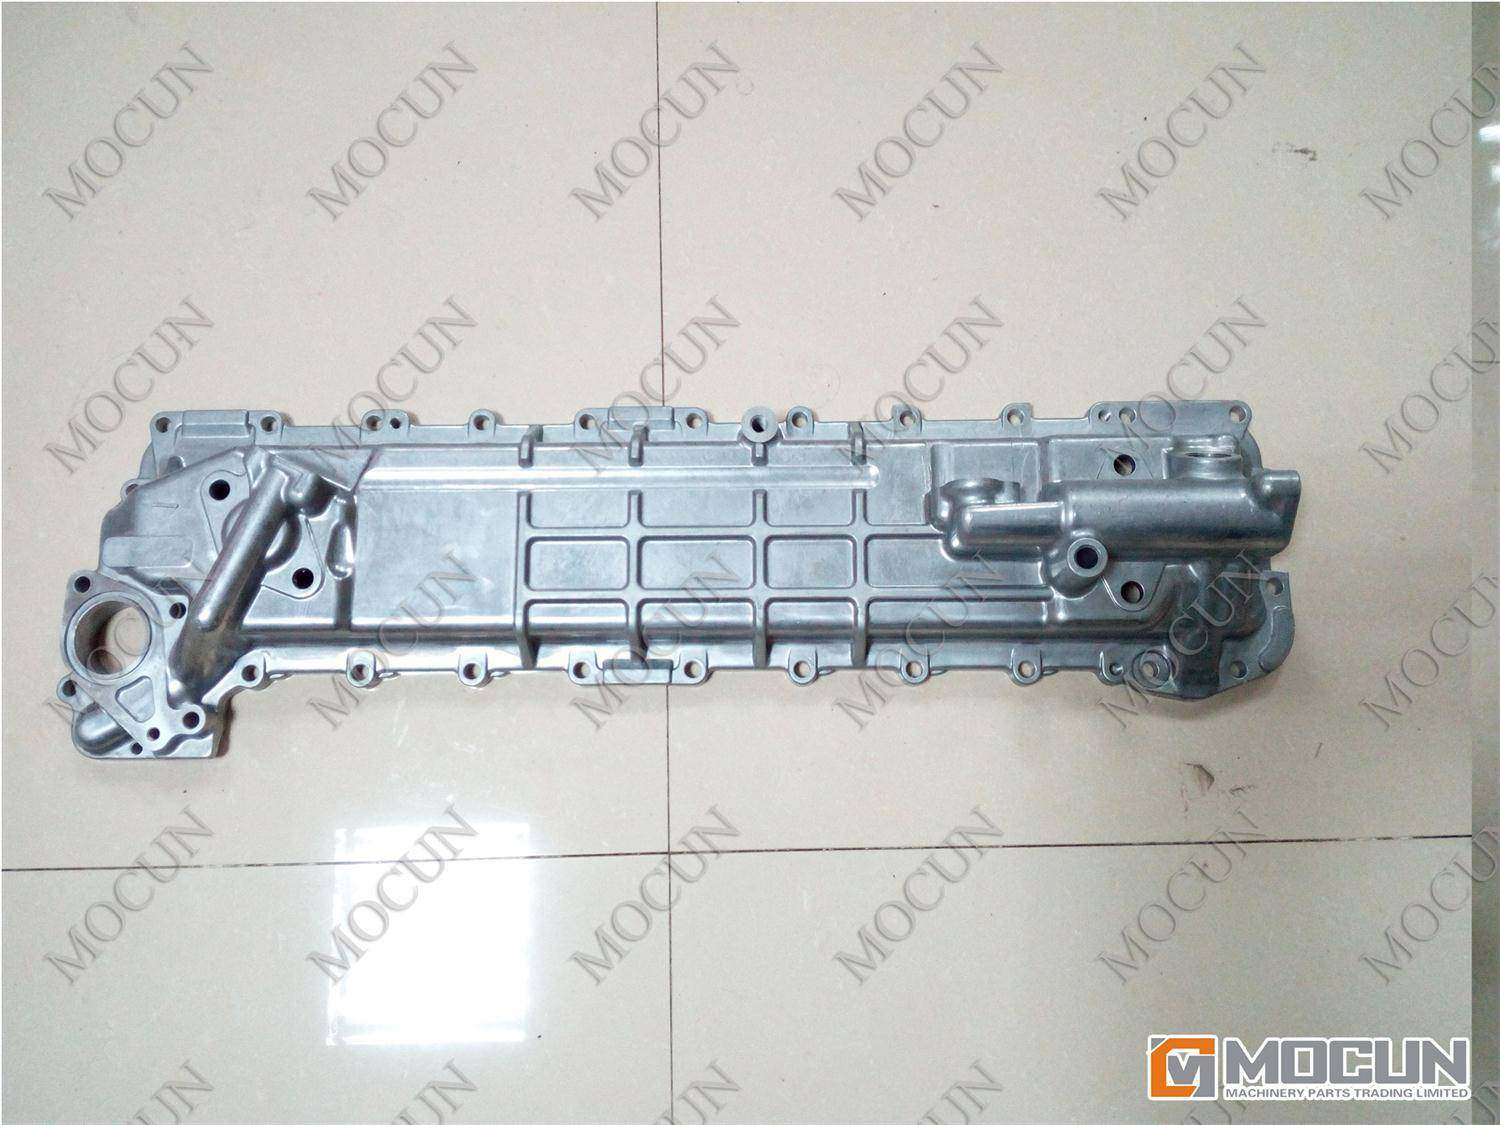 ISUZU 6HK1 Oil Cooler Cover